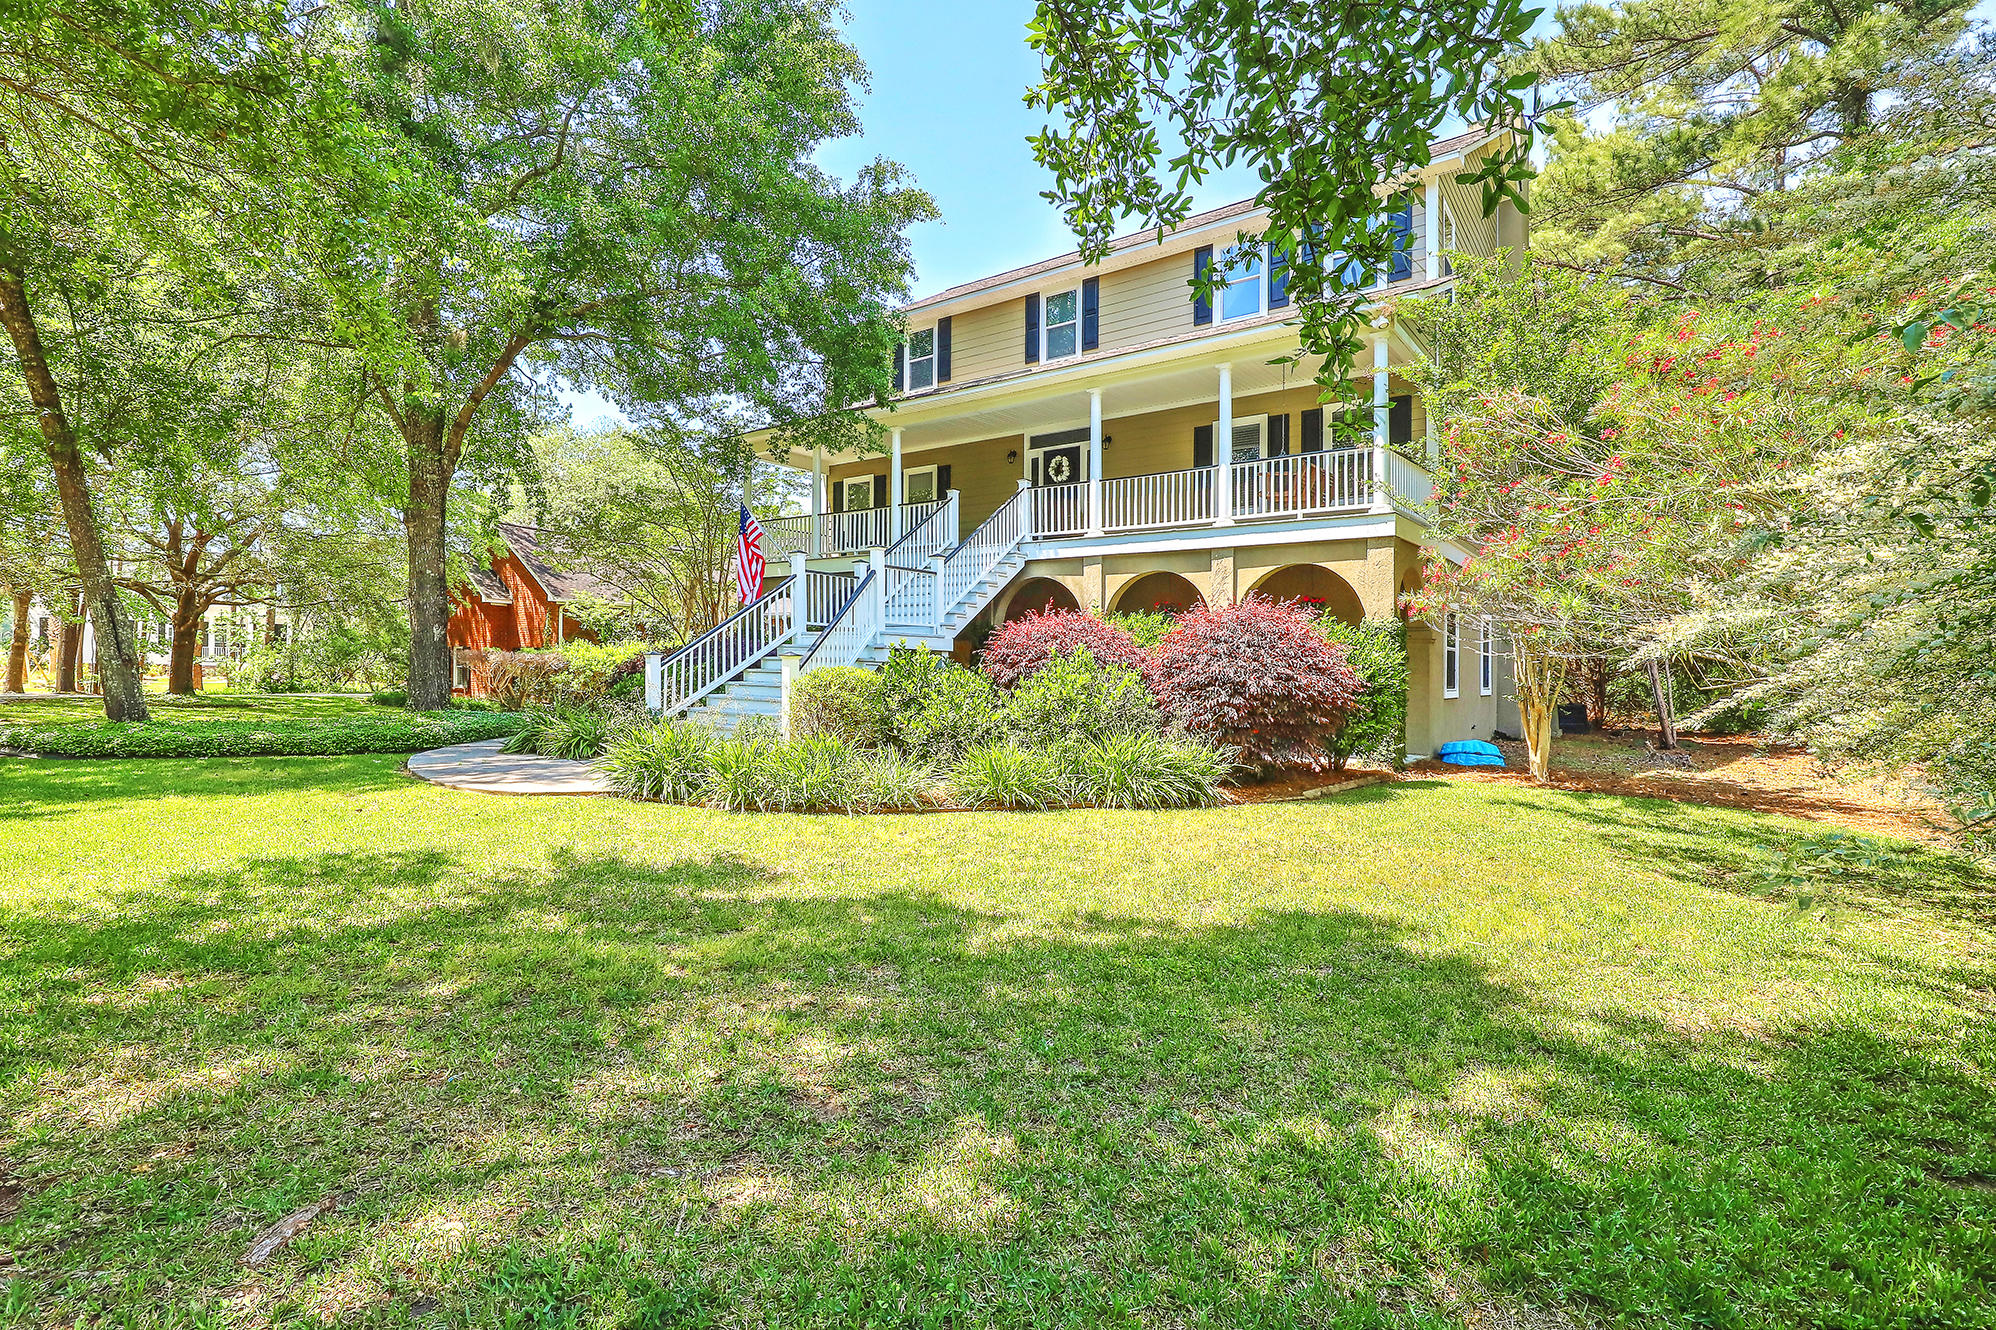 Stono Ferry Homes For Sale - 5104 St Ann, Hollywood, SC - 26